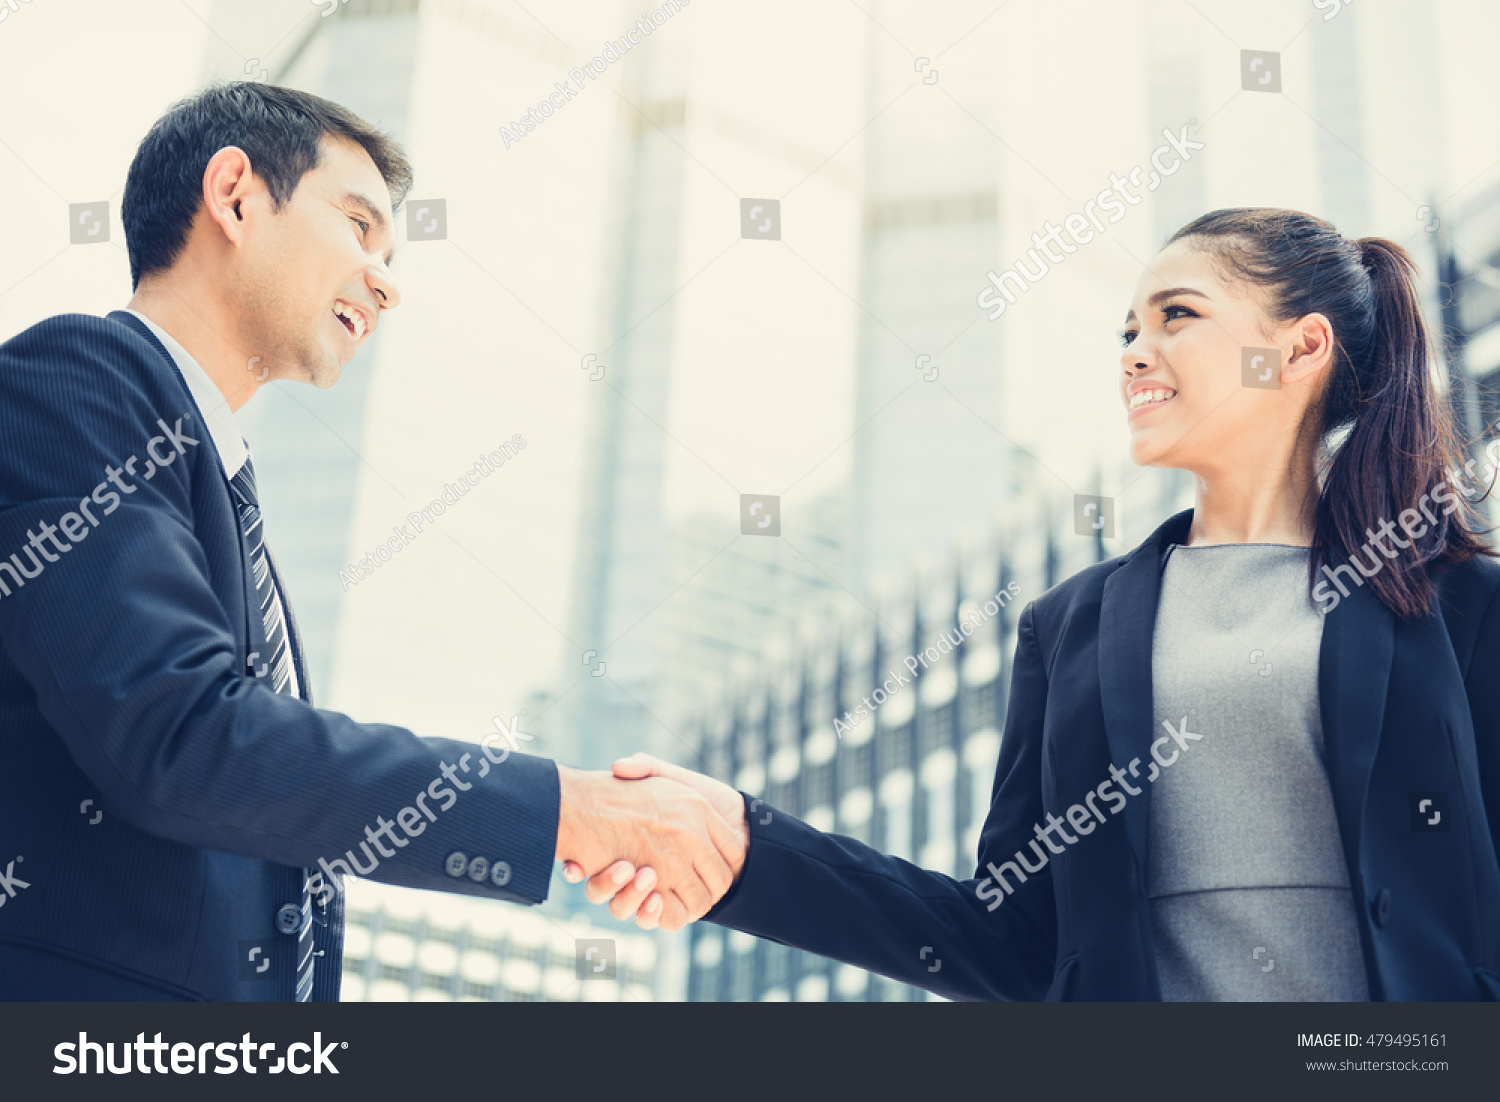 Business people handshake greeting deal at work photo free download - Businesswoman Making Handshake With A Businessman Greeting Dealing And Partnership Concepts Vintage Tone